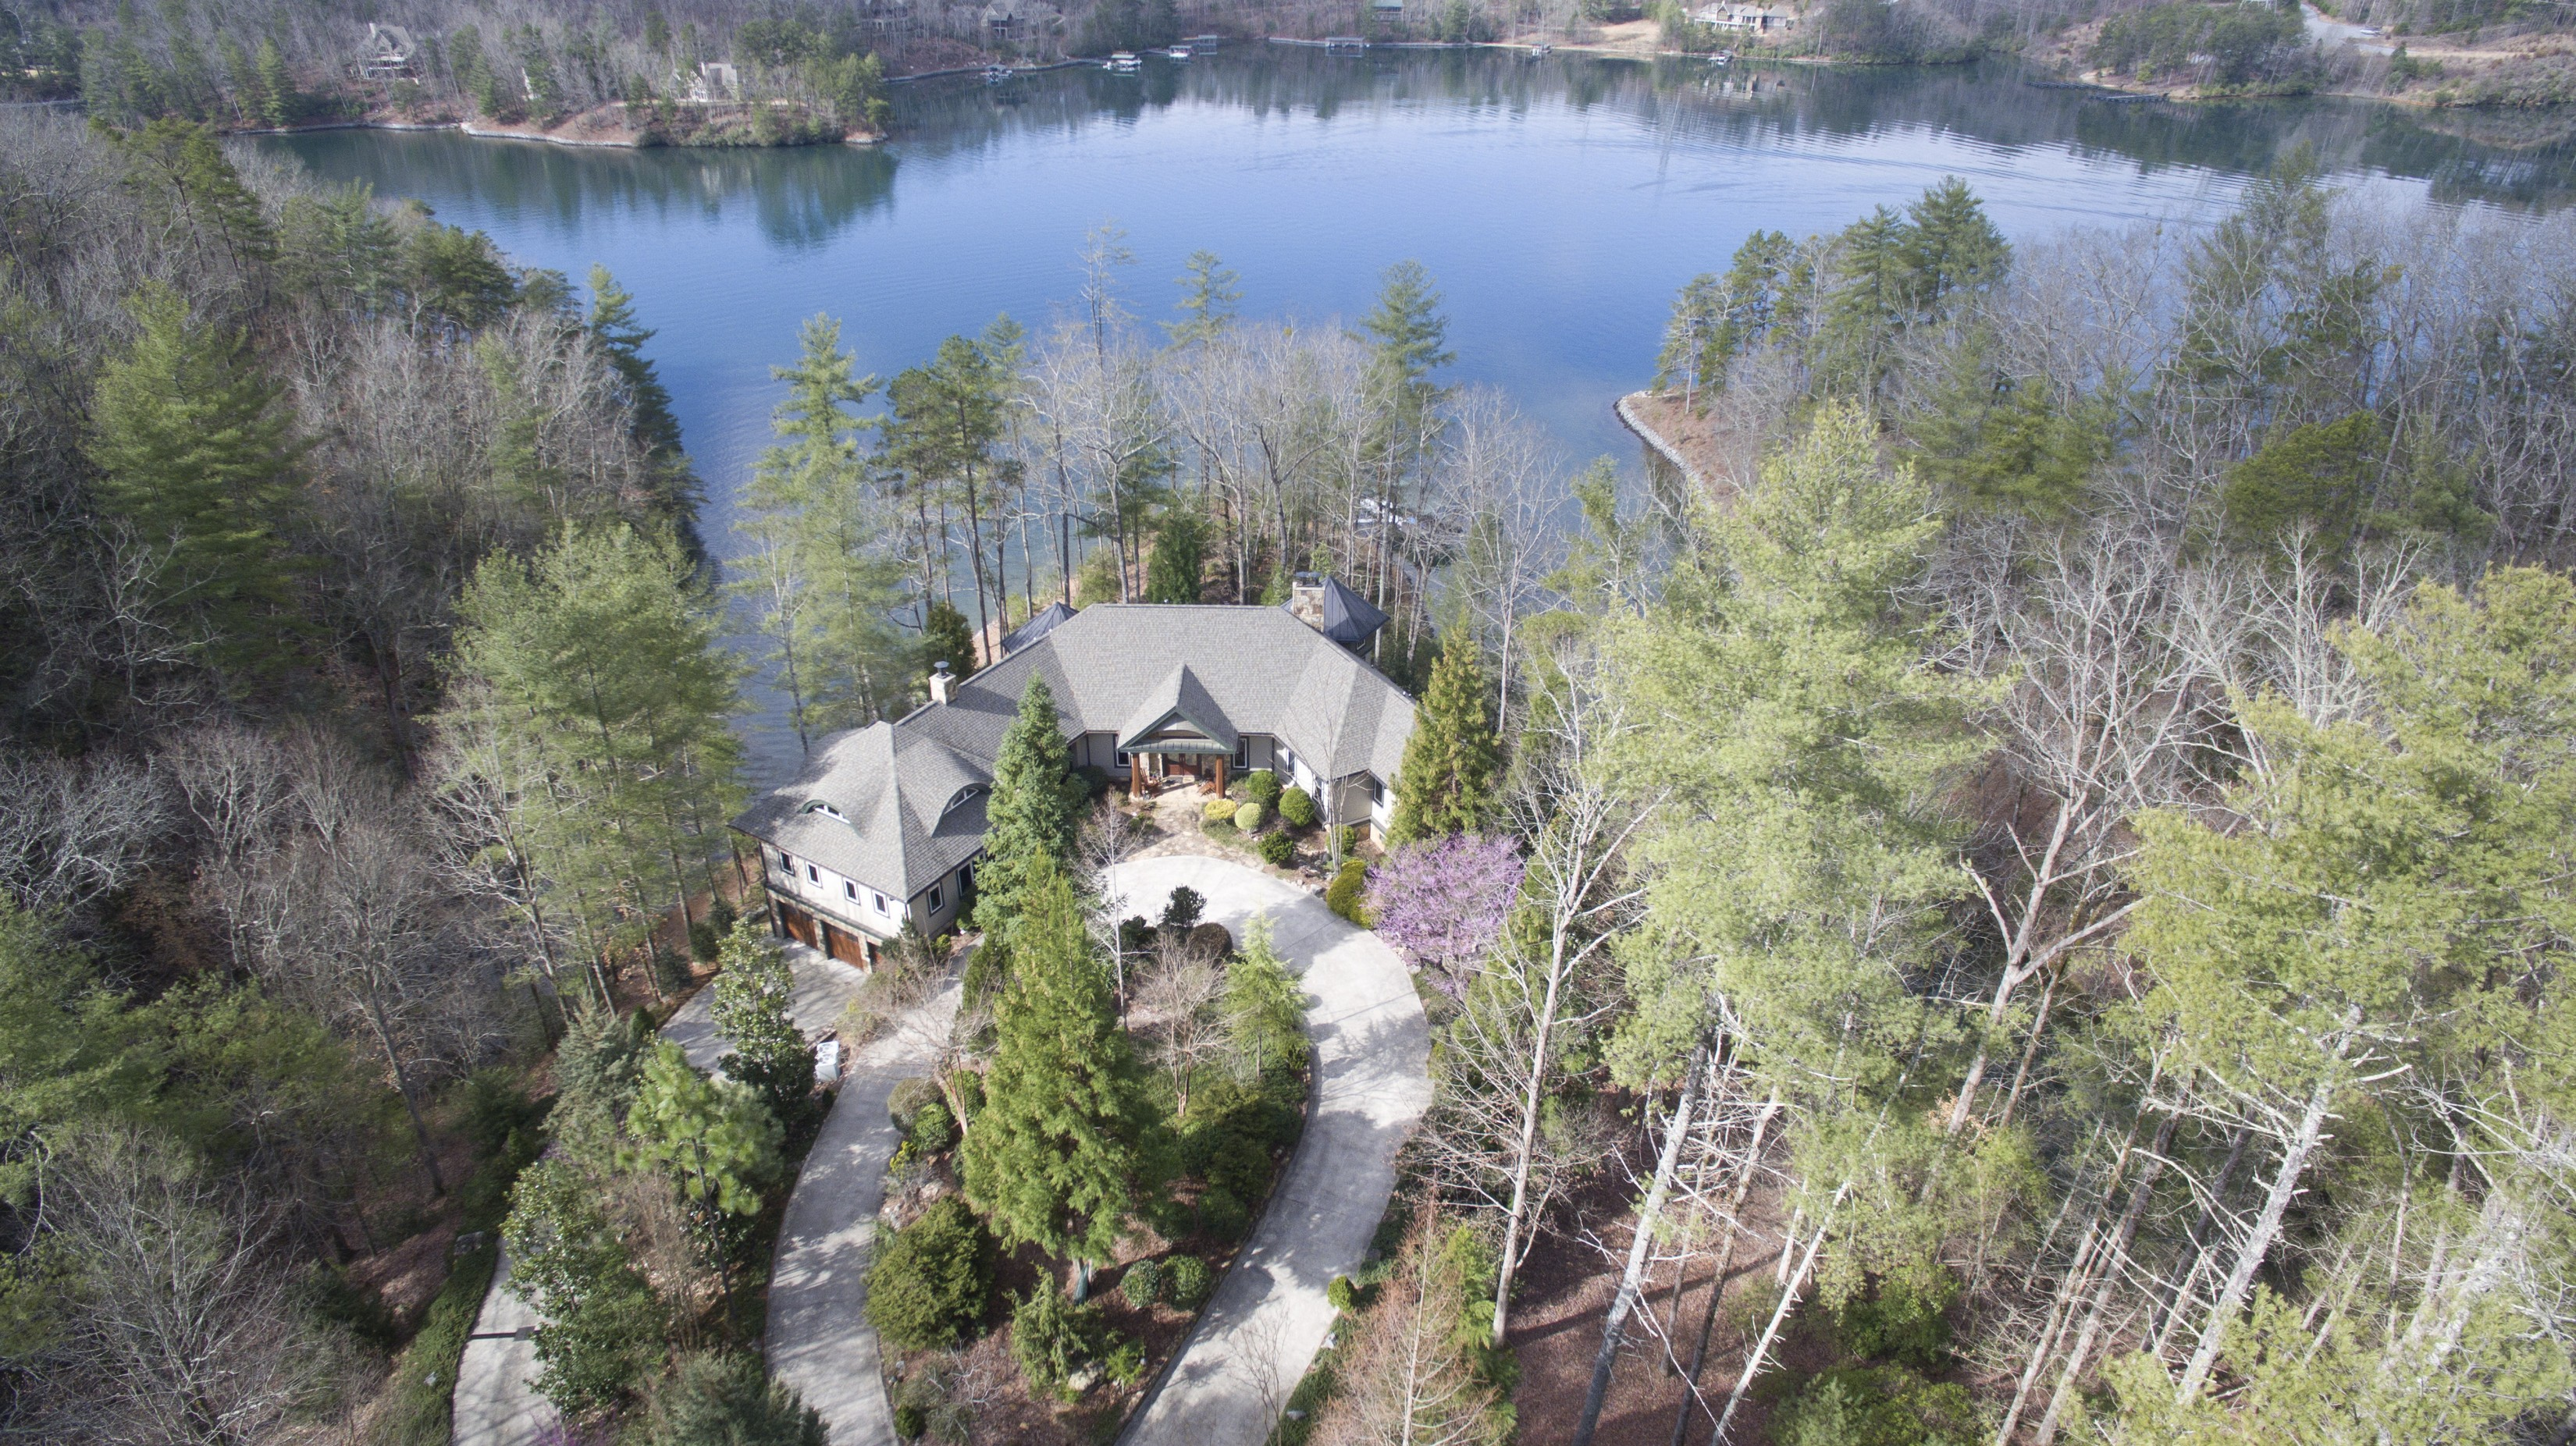 Single Family Home for Sale at Naturally Romantic Lakeside Showpiece on 19.54 acre Waterfront Peninsula 110 Witch Hazel Trail The Cliffs At Keowee Vineyards, Sunset, South Carolina, 29685 United States